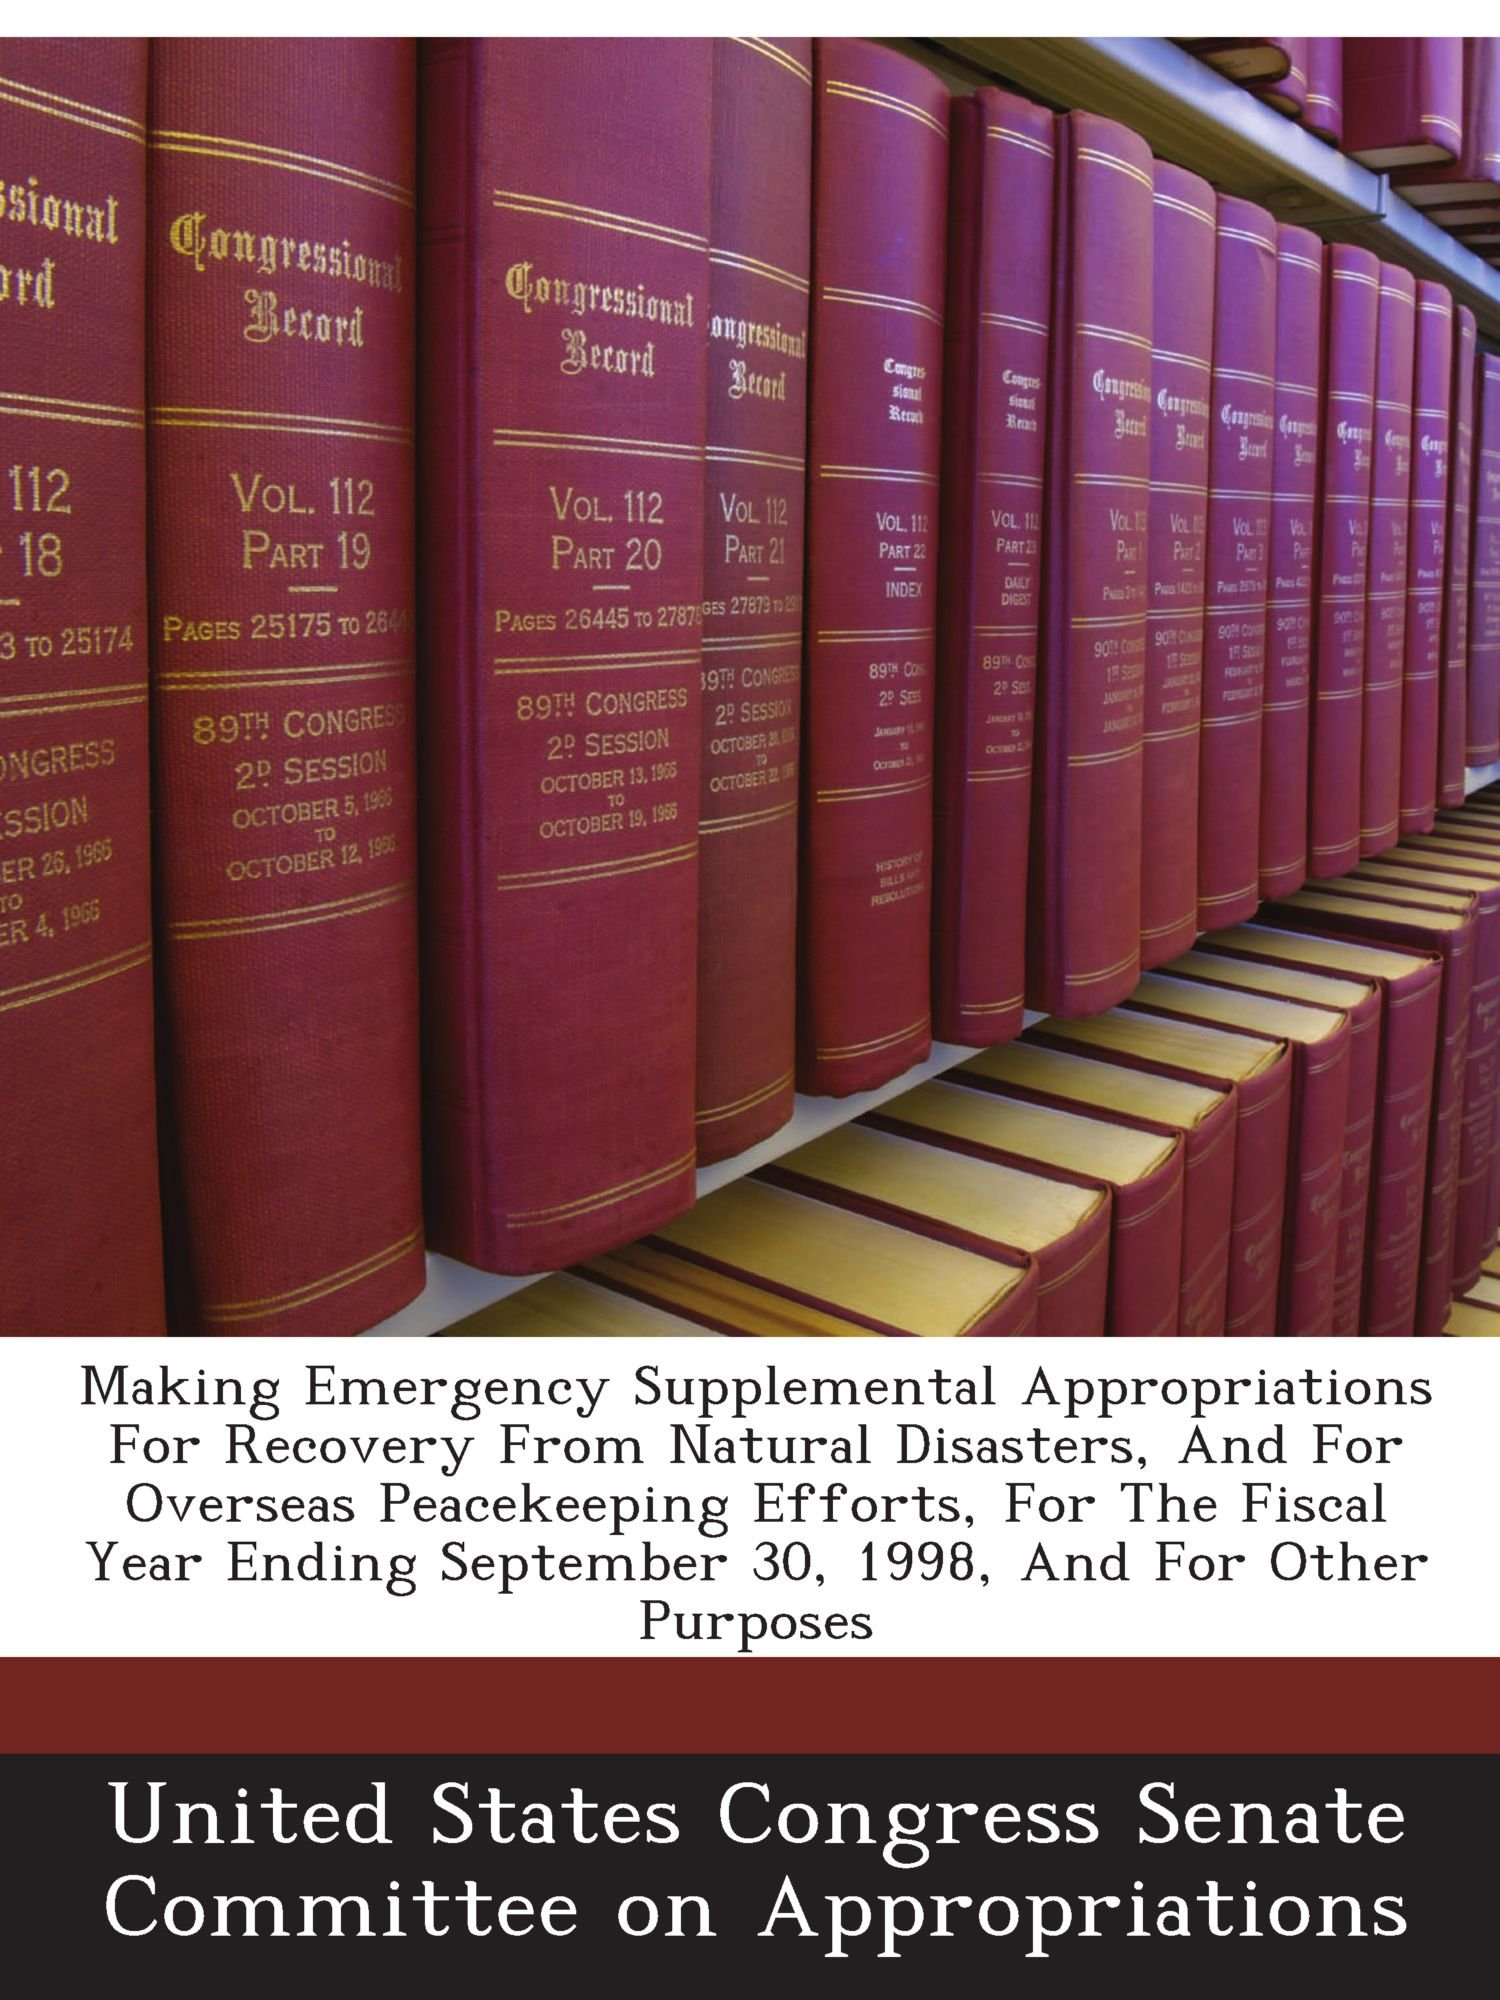 Making Emergency Supplemental Appropriations For Recovery From Natural Disasters, And For Overseas Peacekeeping Efforts, For The Fiscal Year Ending September 30, 1998, And For Other Purposes pdf epub